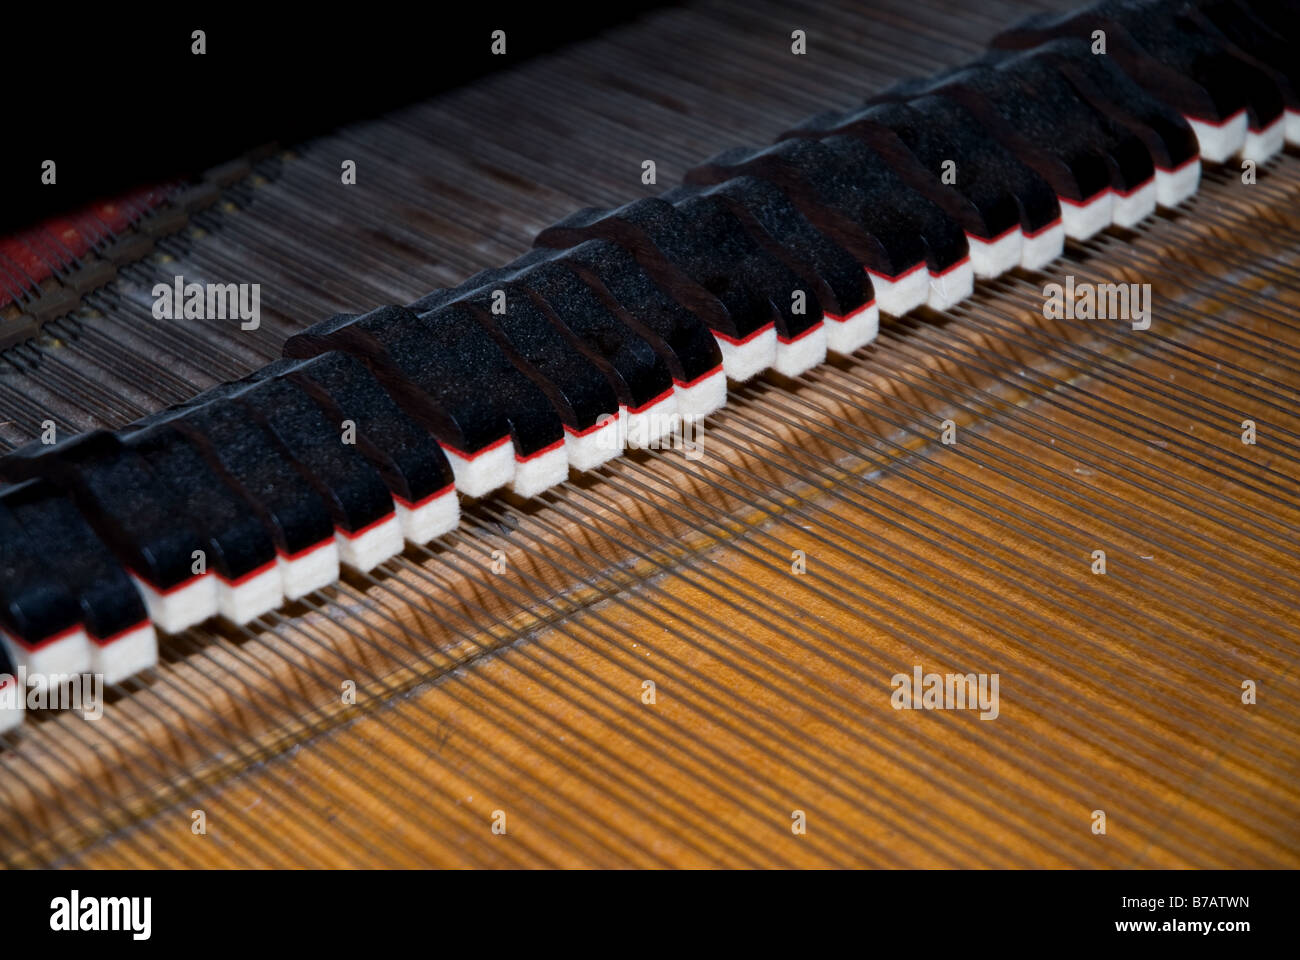 piano strings - Stock Image